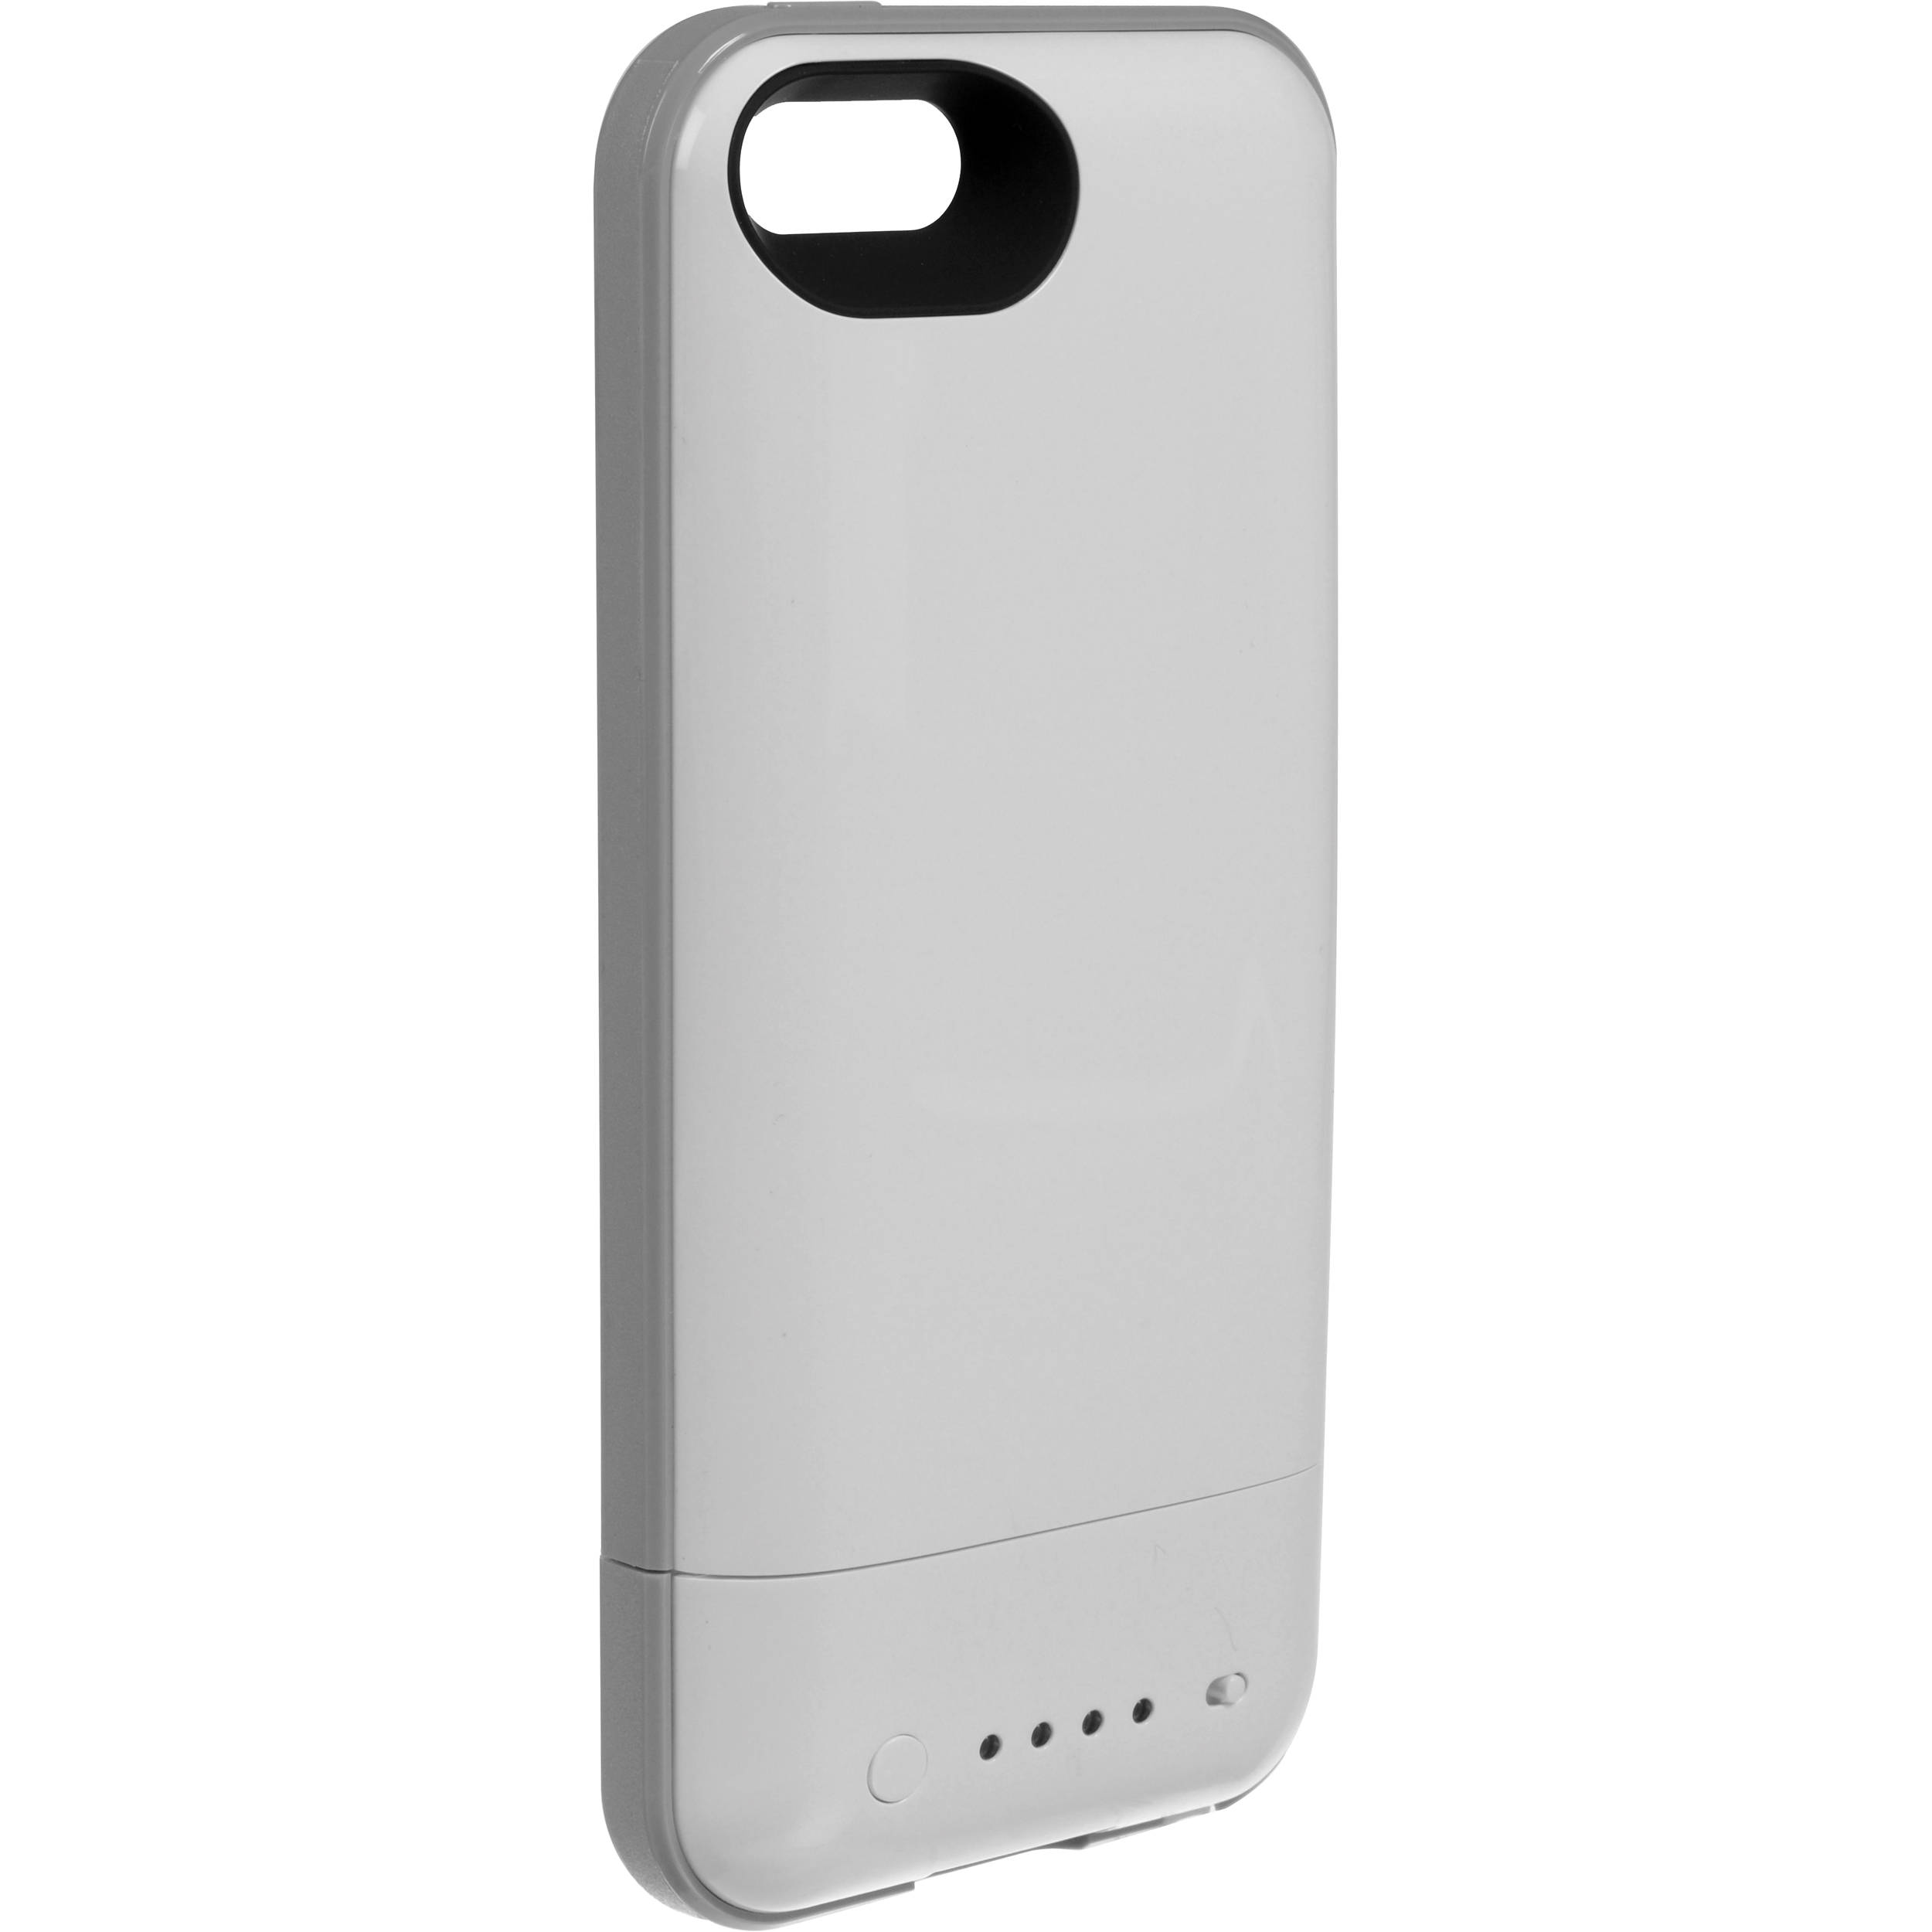 sports shoes 4a056 ffc2d mophie juice pack plus for iPhone 5/5s/SE (White)